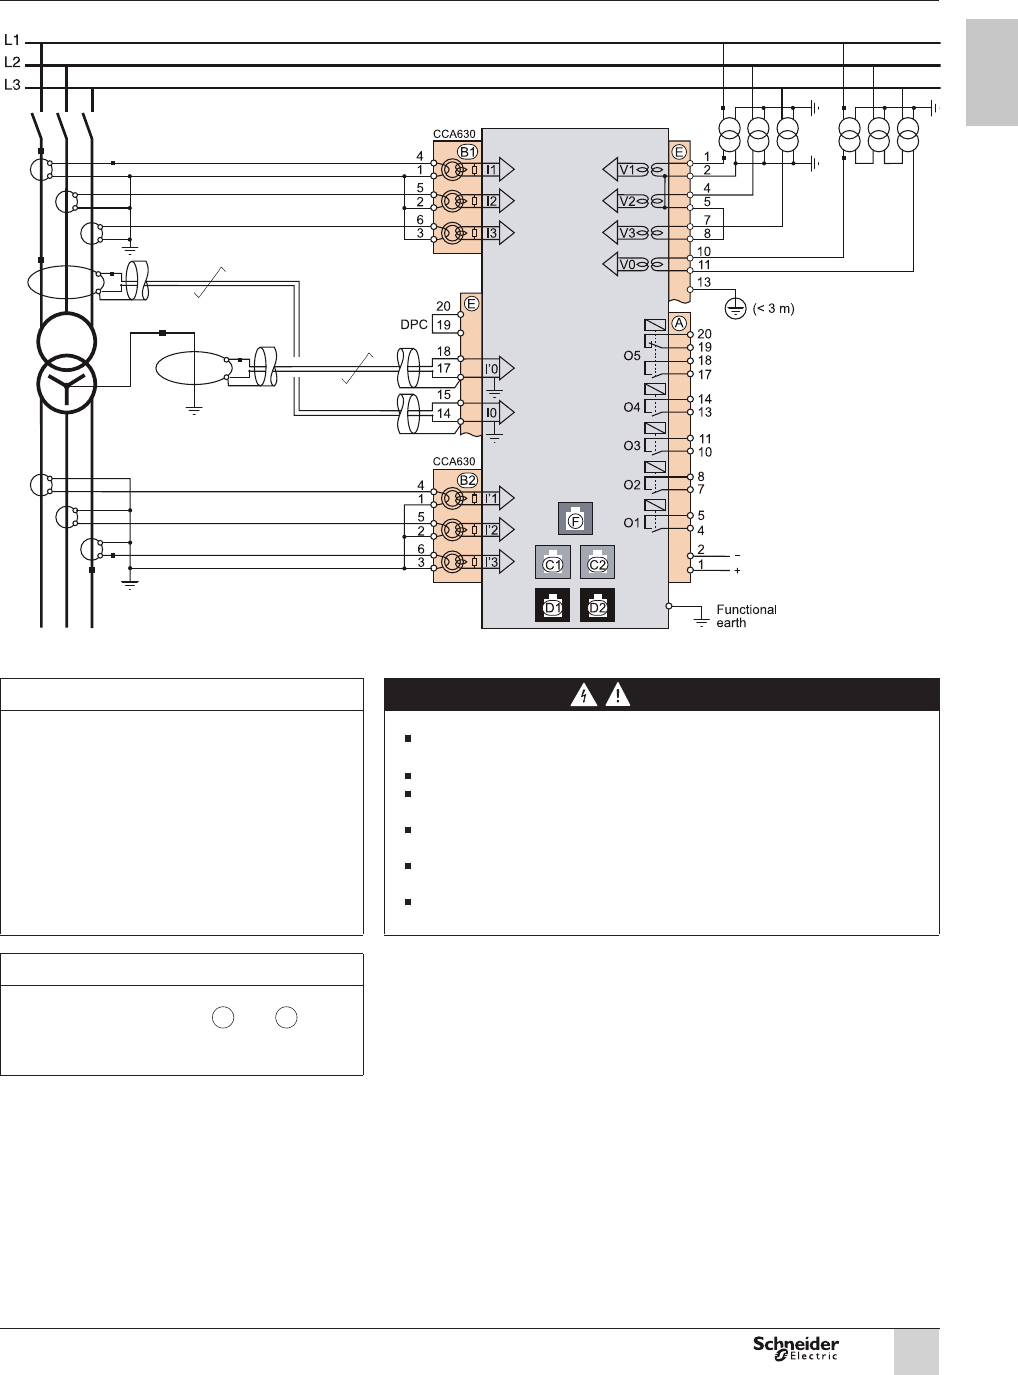 Wiring Diagram - SEPAM Series 80.pdf - schneider .ANSI 87T and 87M  differential protection functionsPDFSLIDE.NET